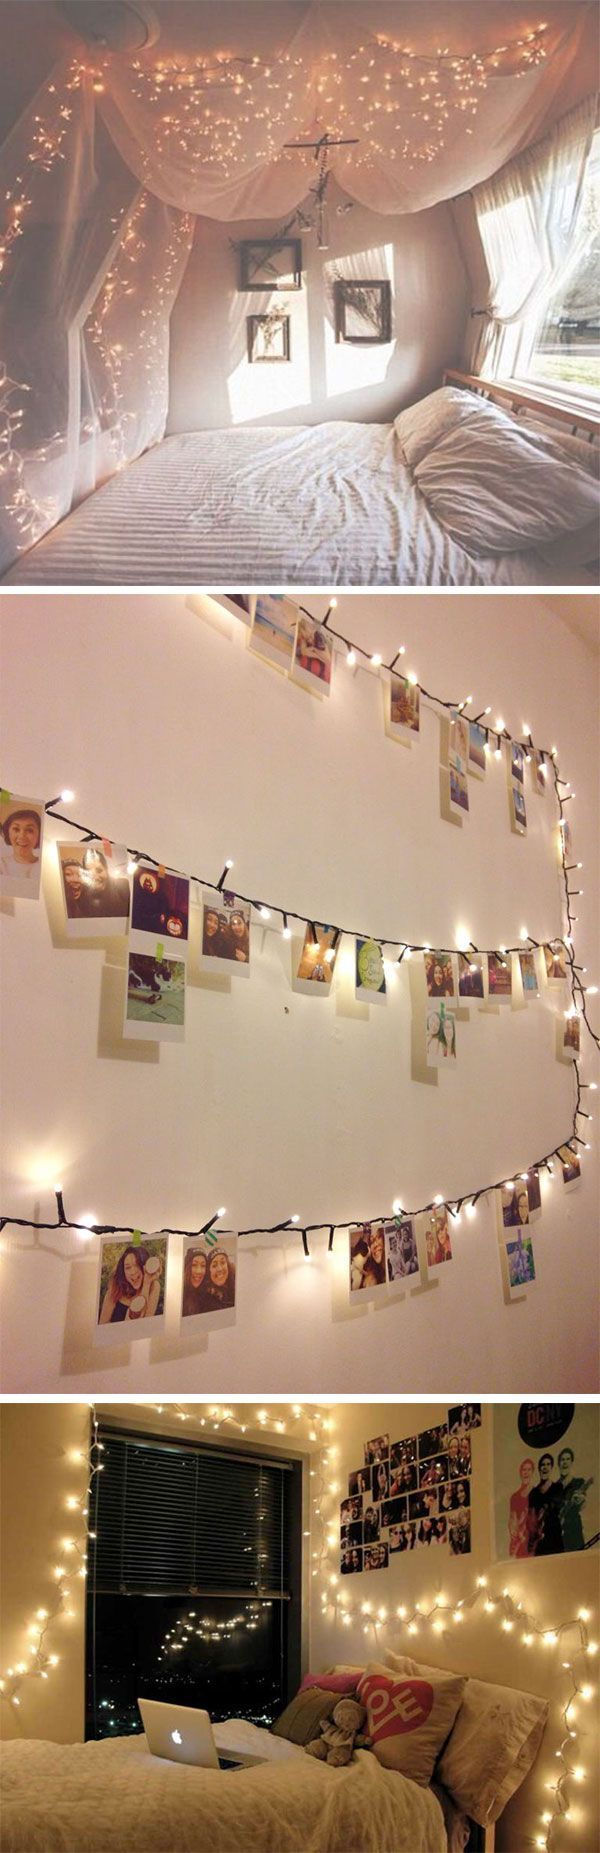 Cool rooms with lights tumblr - 13 Ways To Use Fairy Lights To Make Your Home Look Magical